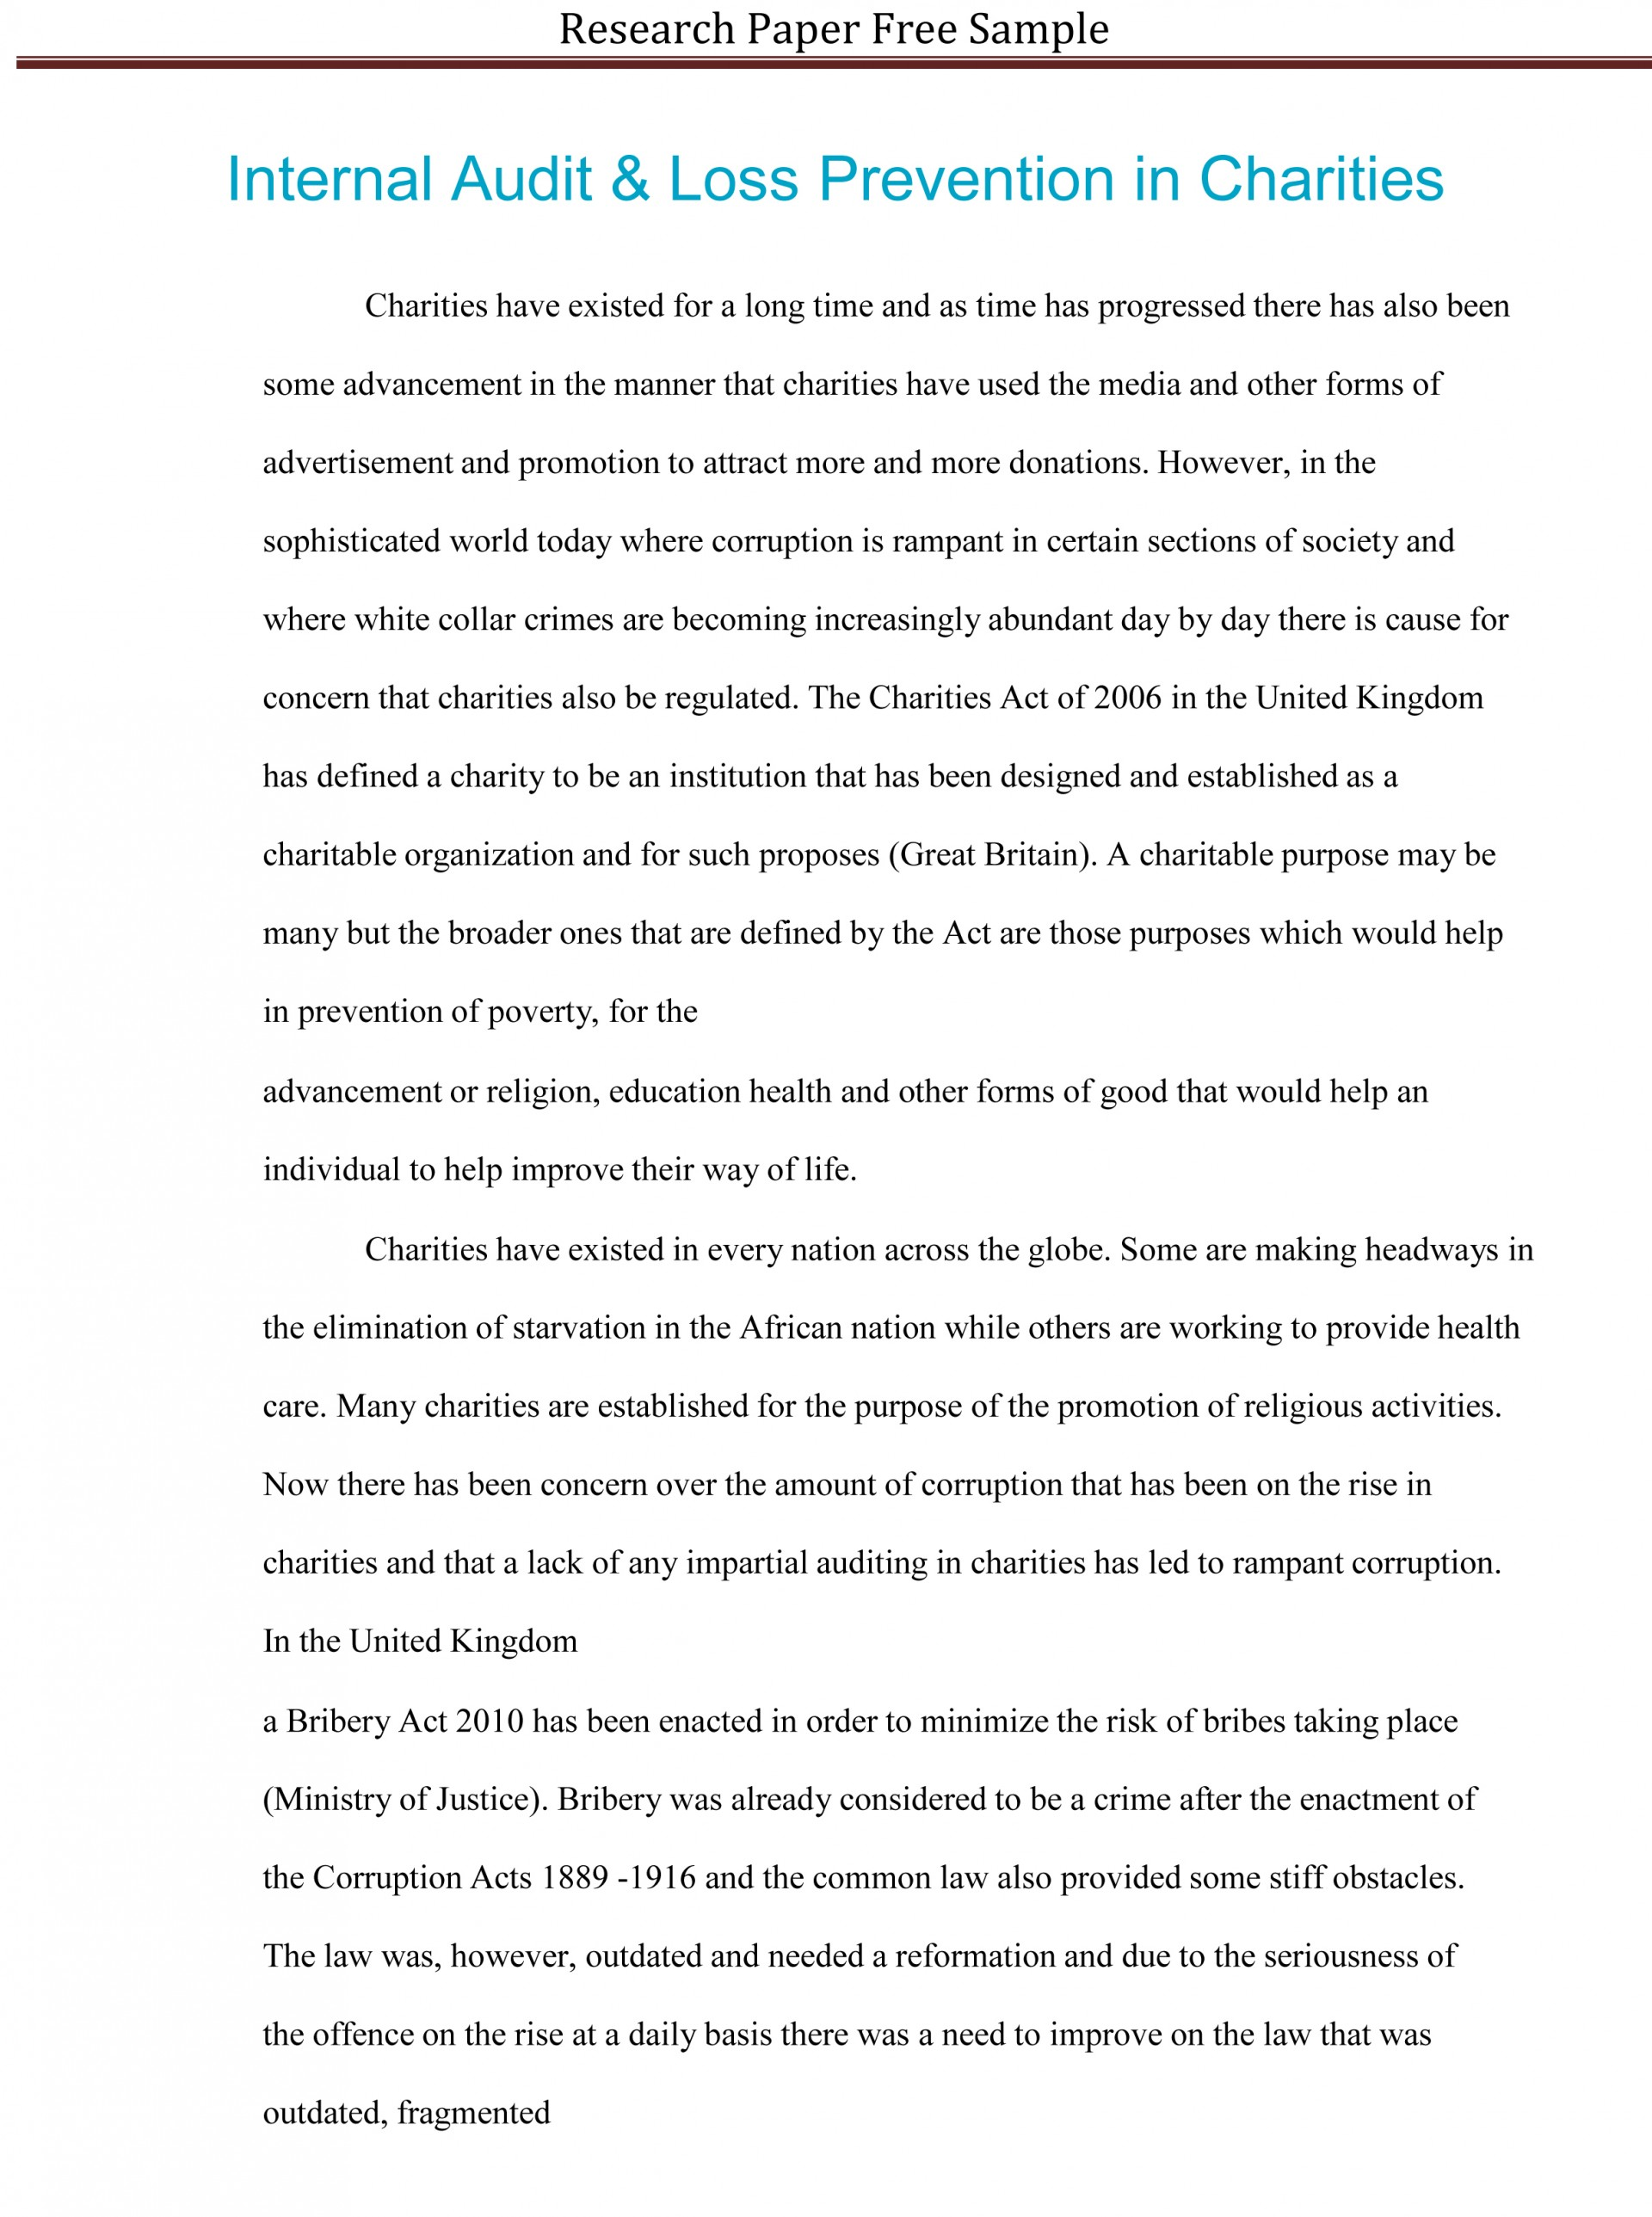 010 Writing An Introduction To Research Paper Help Paragraph Top A Intro Steps In 1920